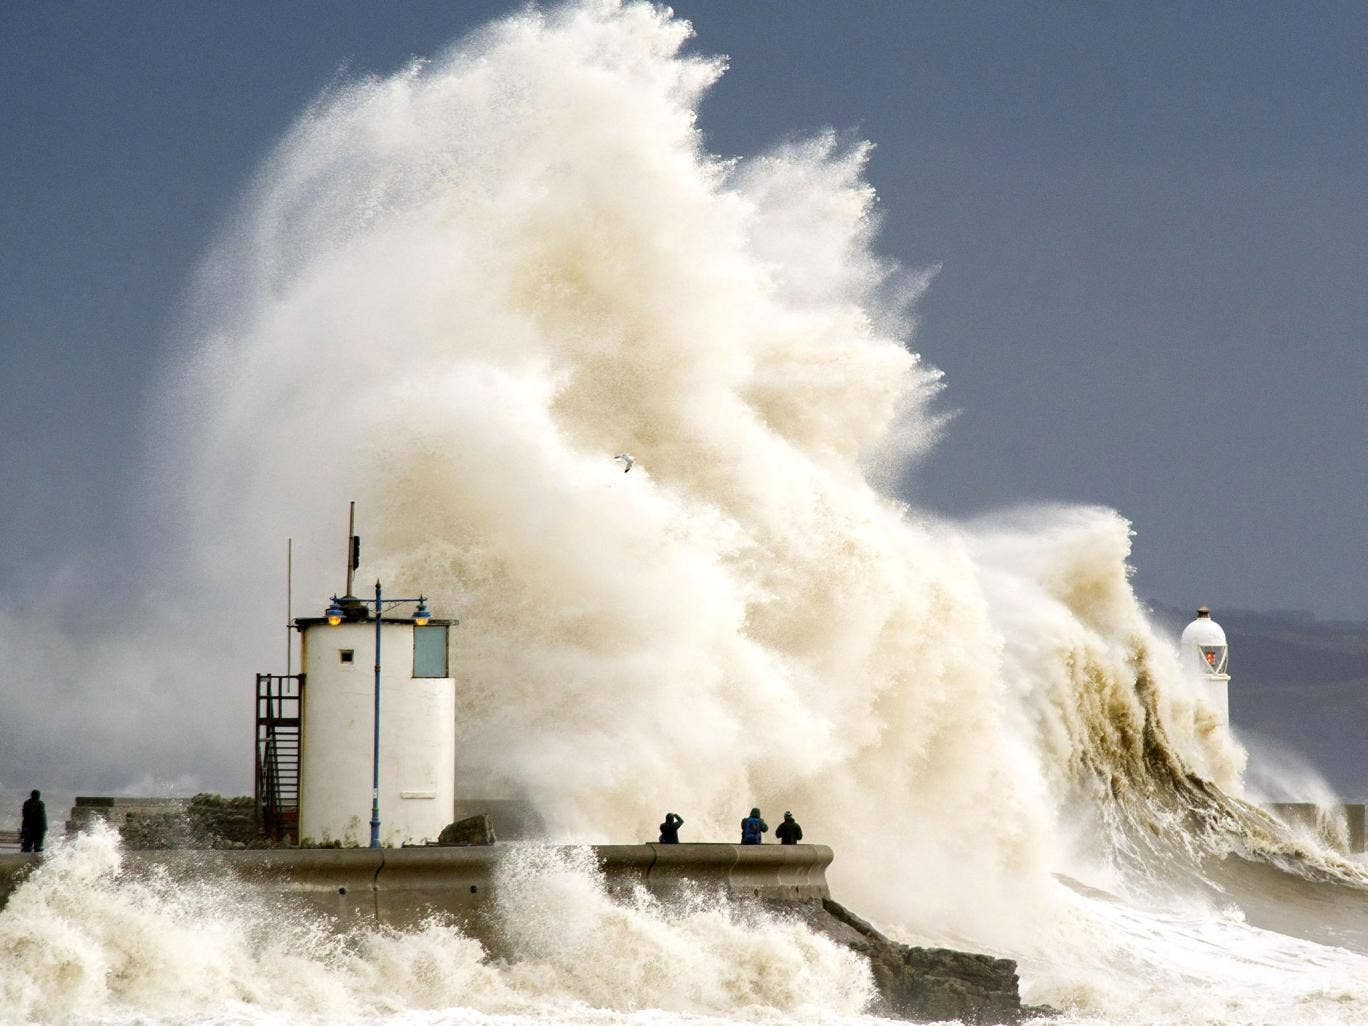 Spectators watch as waves break over the harbour wall at Porthcawl during a high tide in Porthcawl